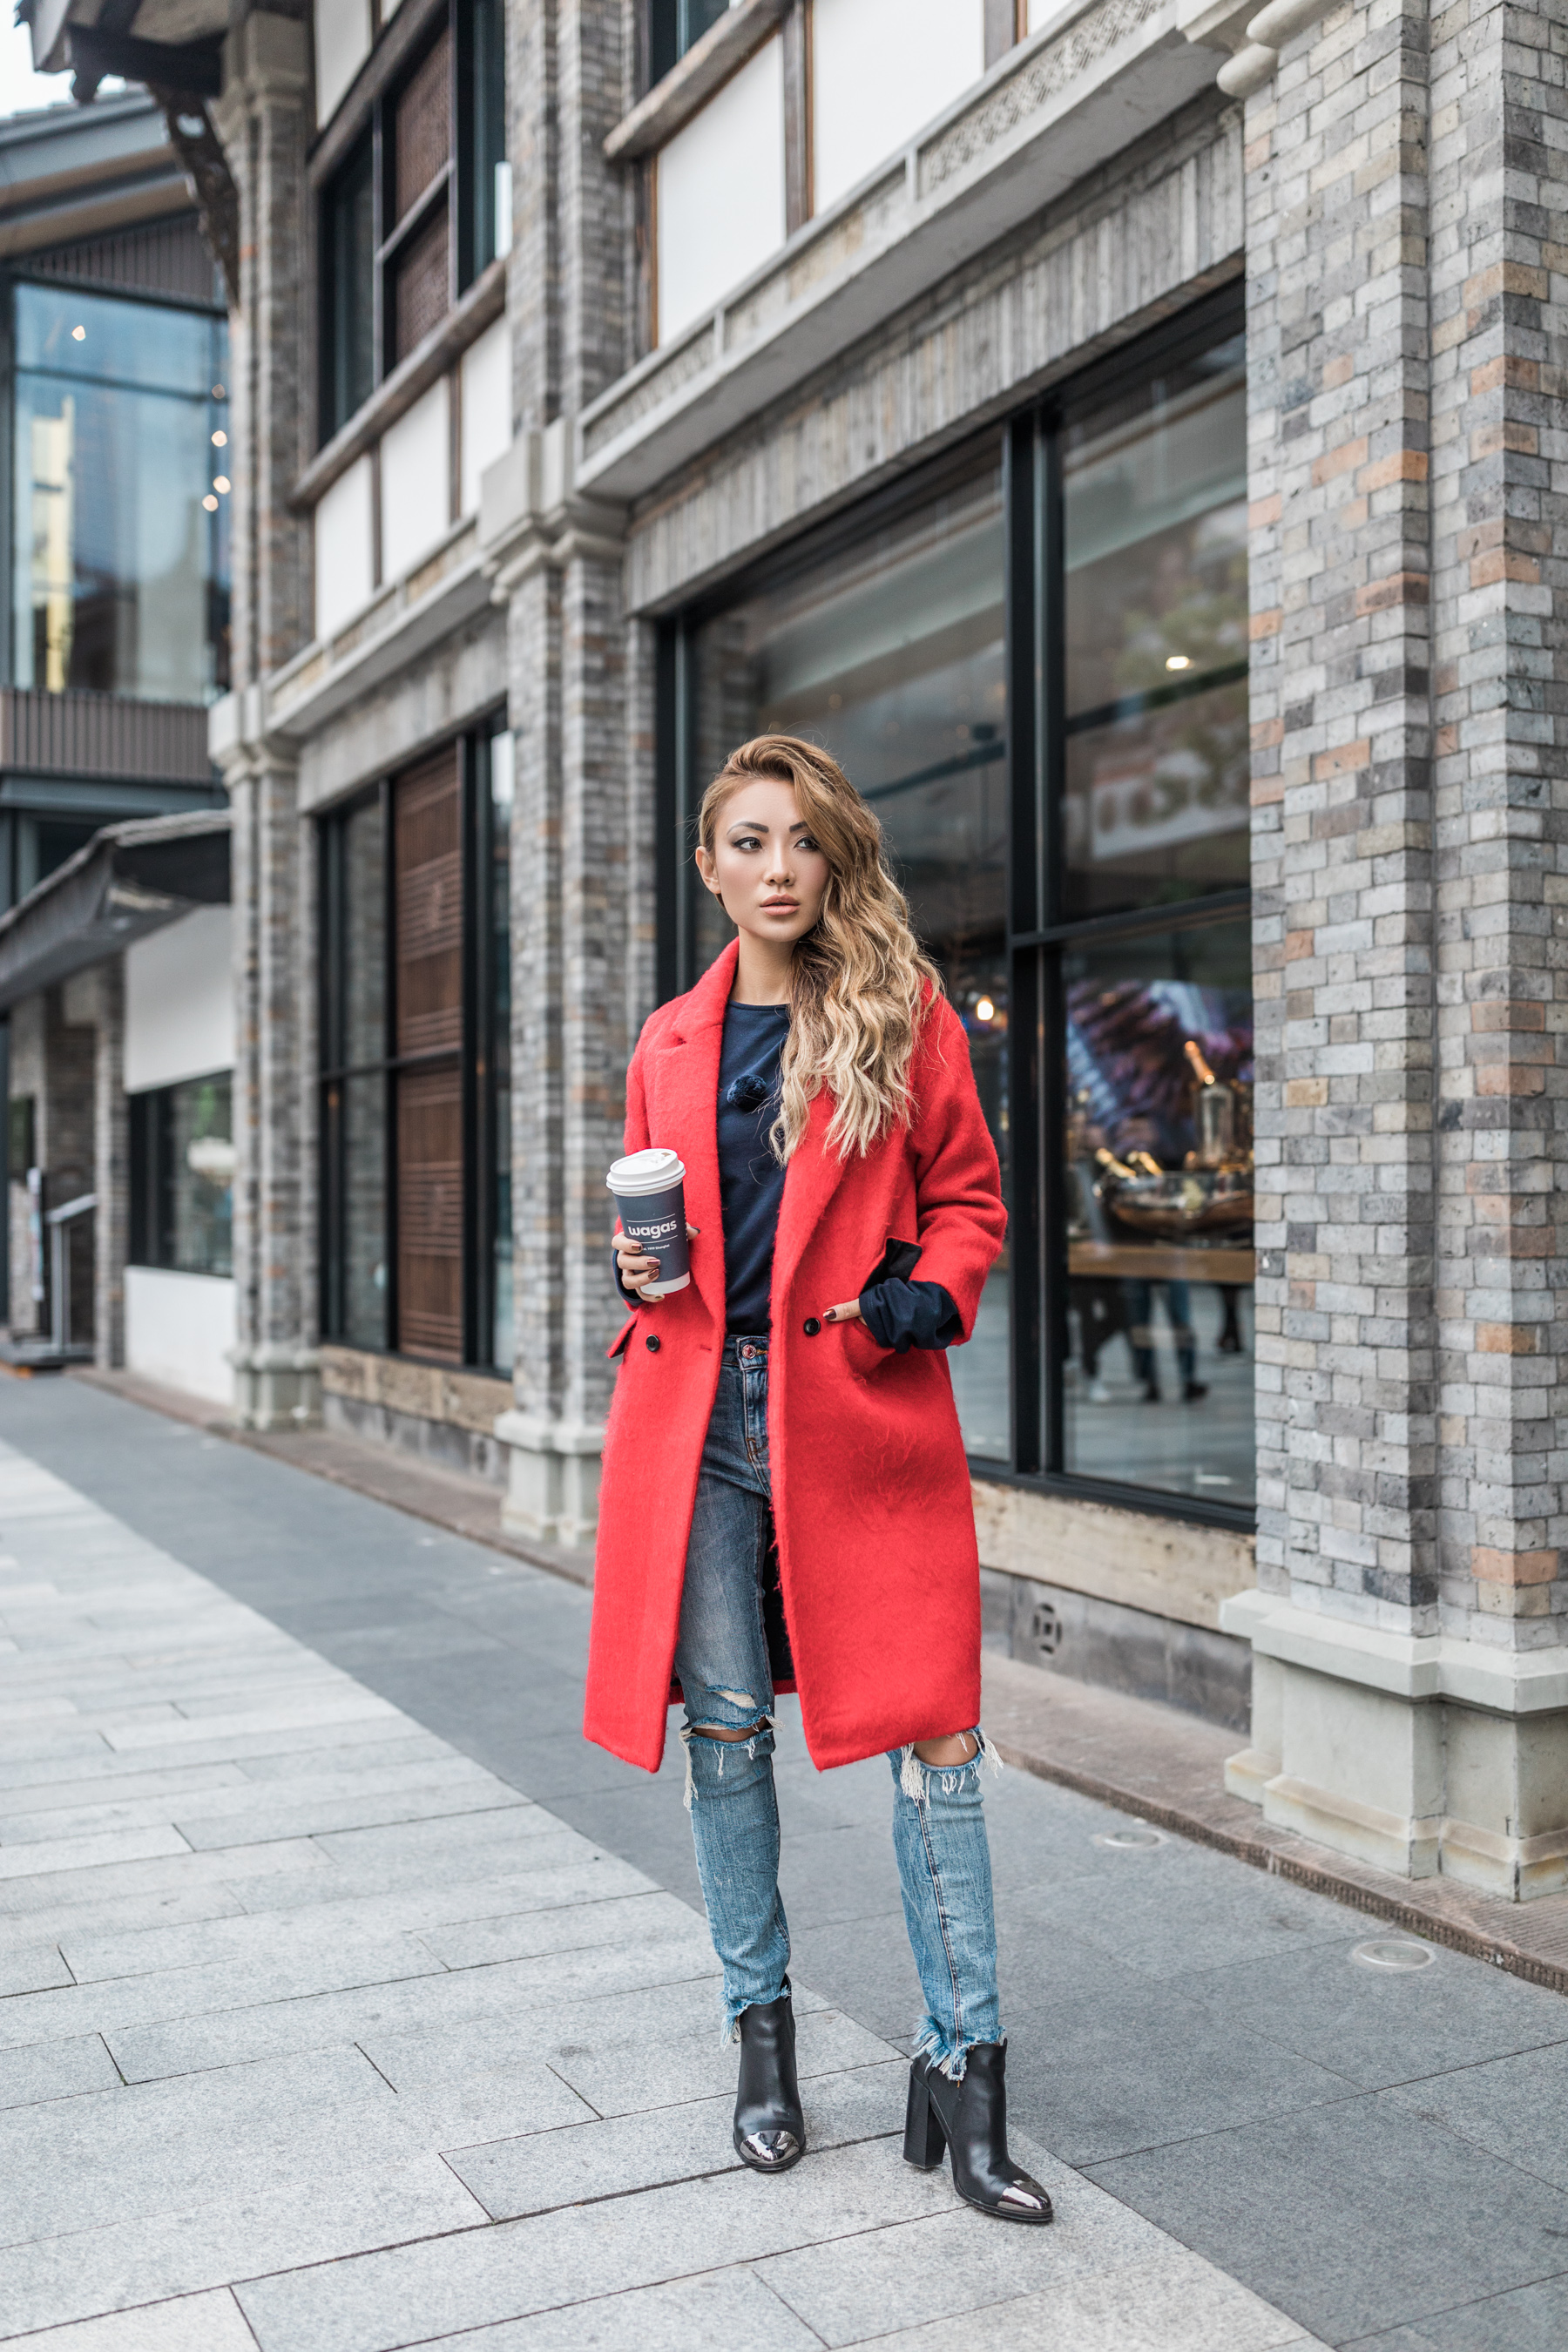 Essential Winter Coats Every Girl Should Own - Red Menswear Coat // NotJessFashion.com